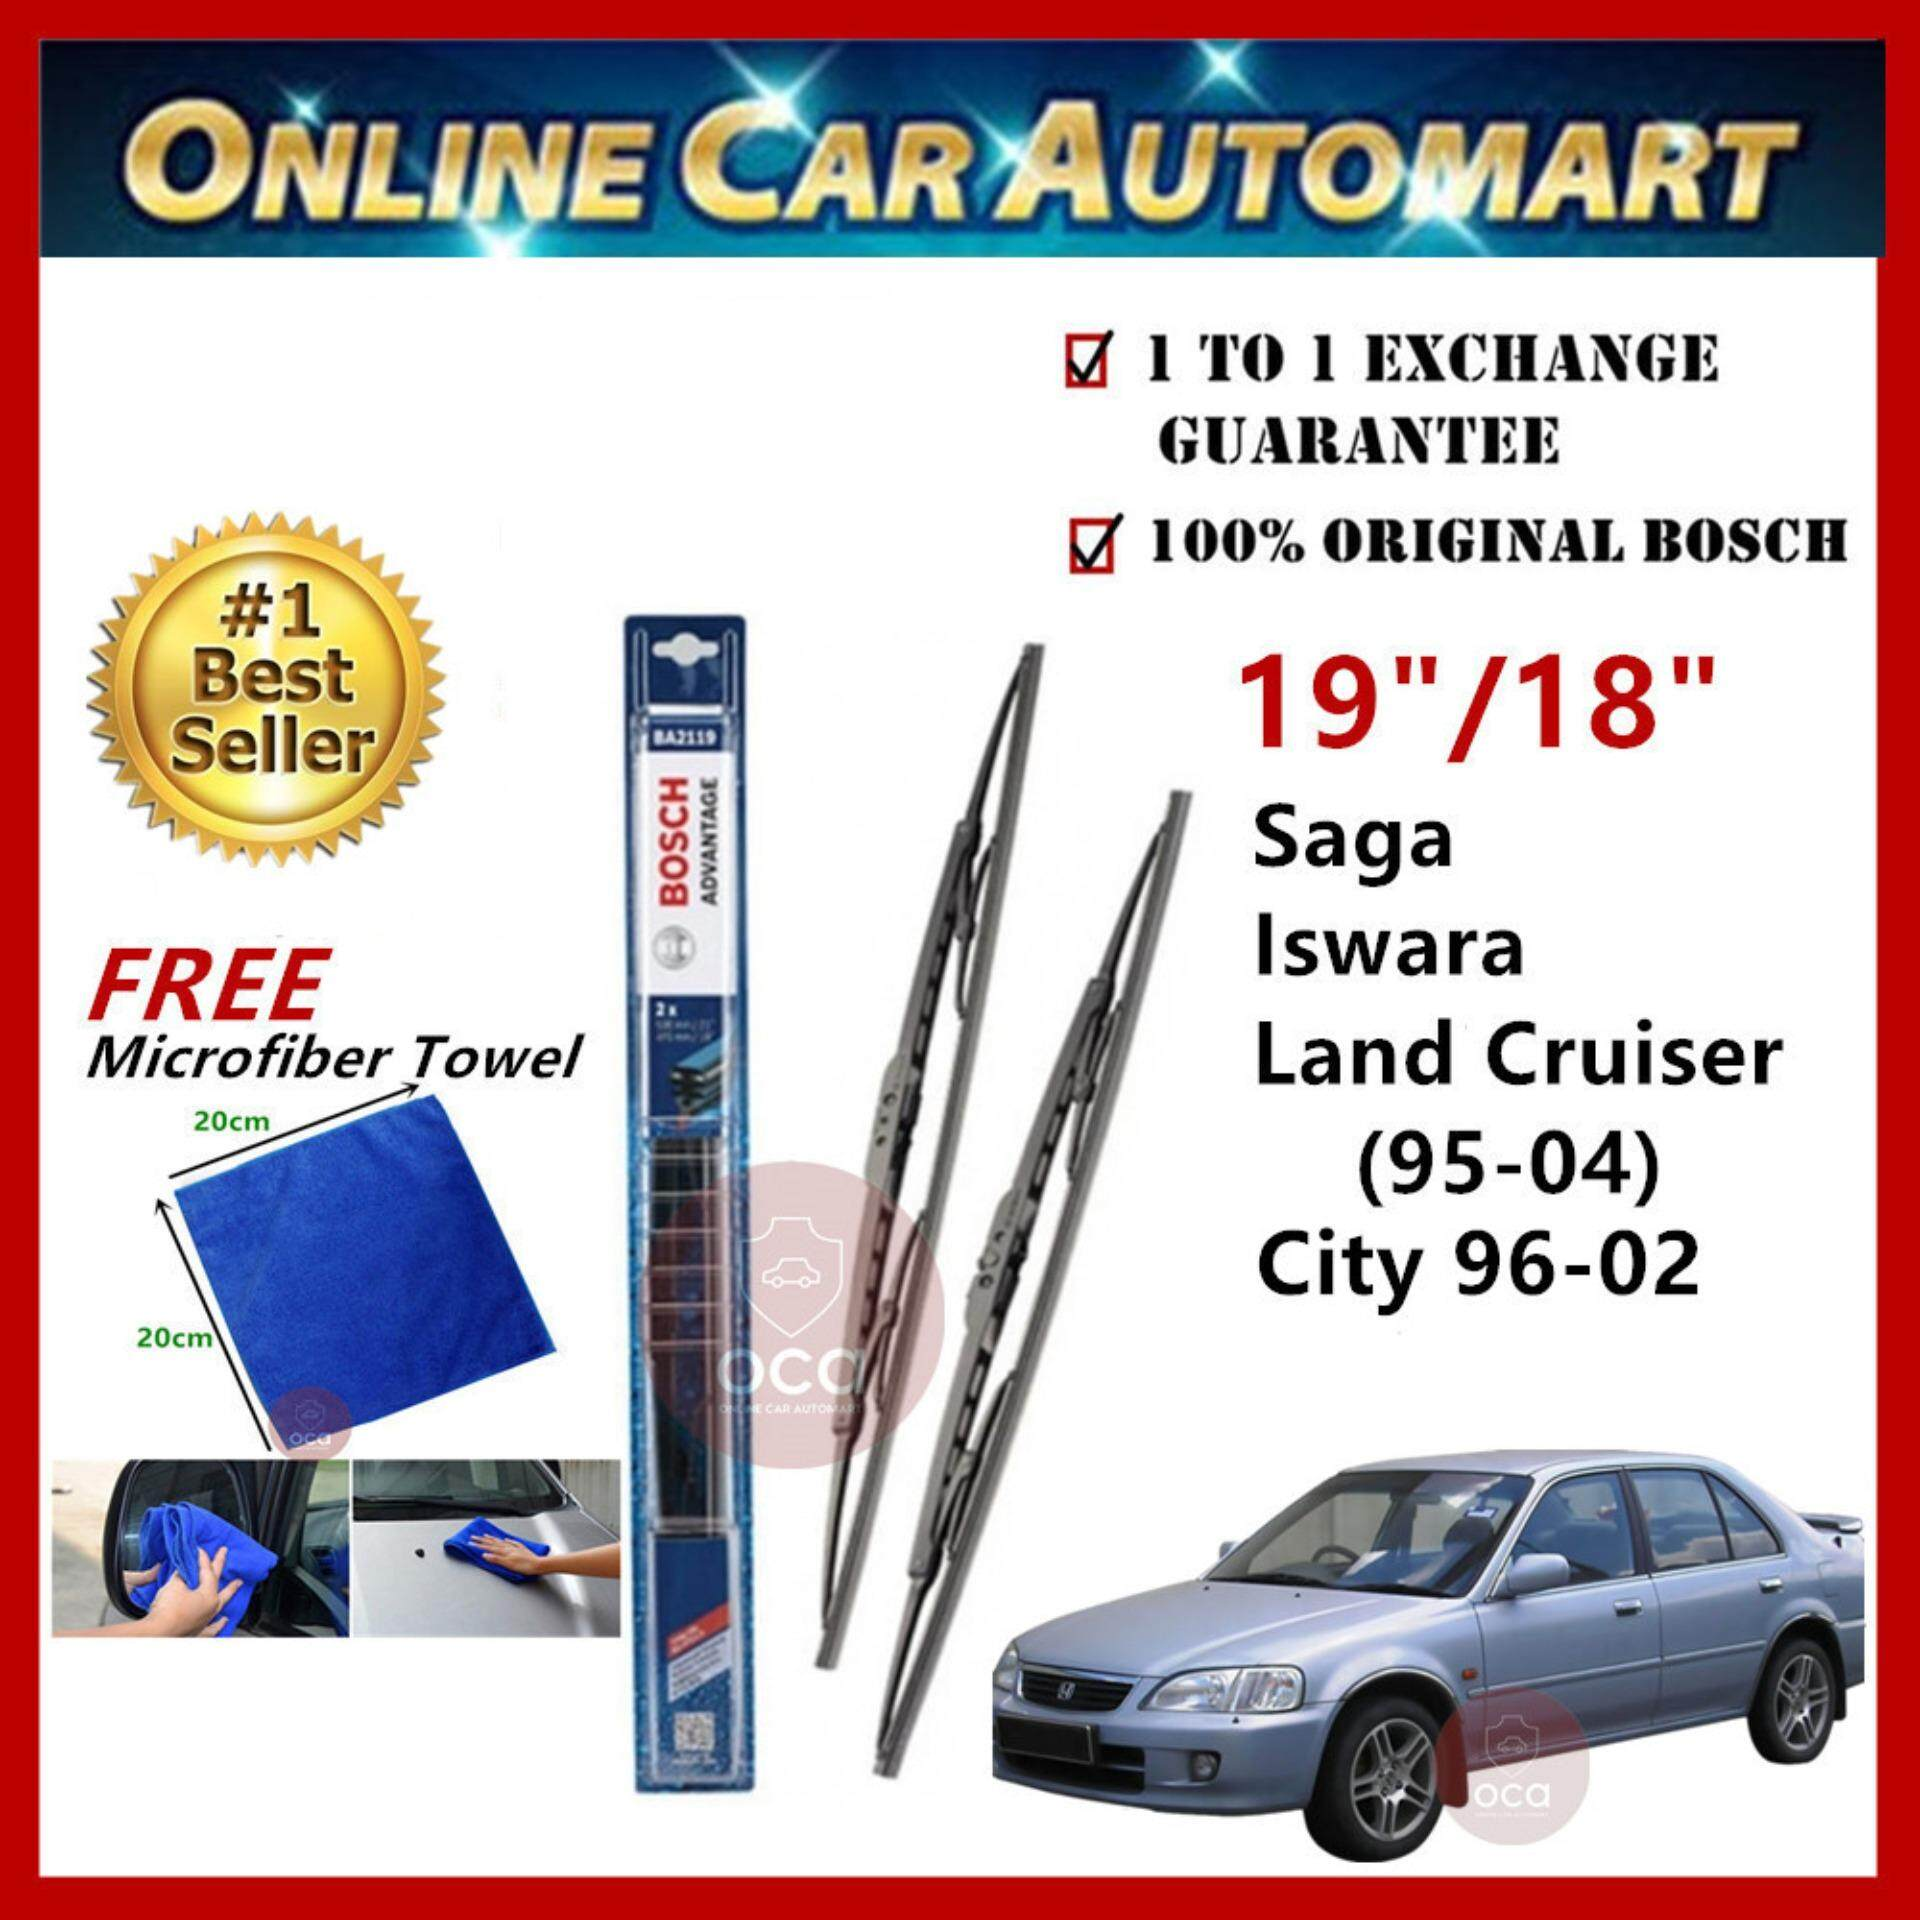 Honda City (SY8) Yr 1996-2002 - Bosch Advantage Wiper Blade (Set) - Compatible only with U-Hook Type - 19 inch & 18 inch